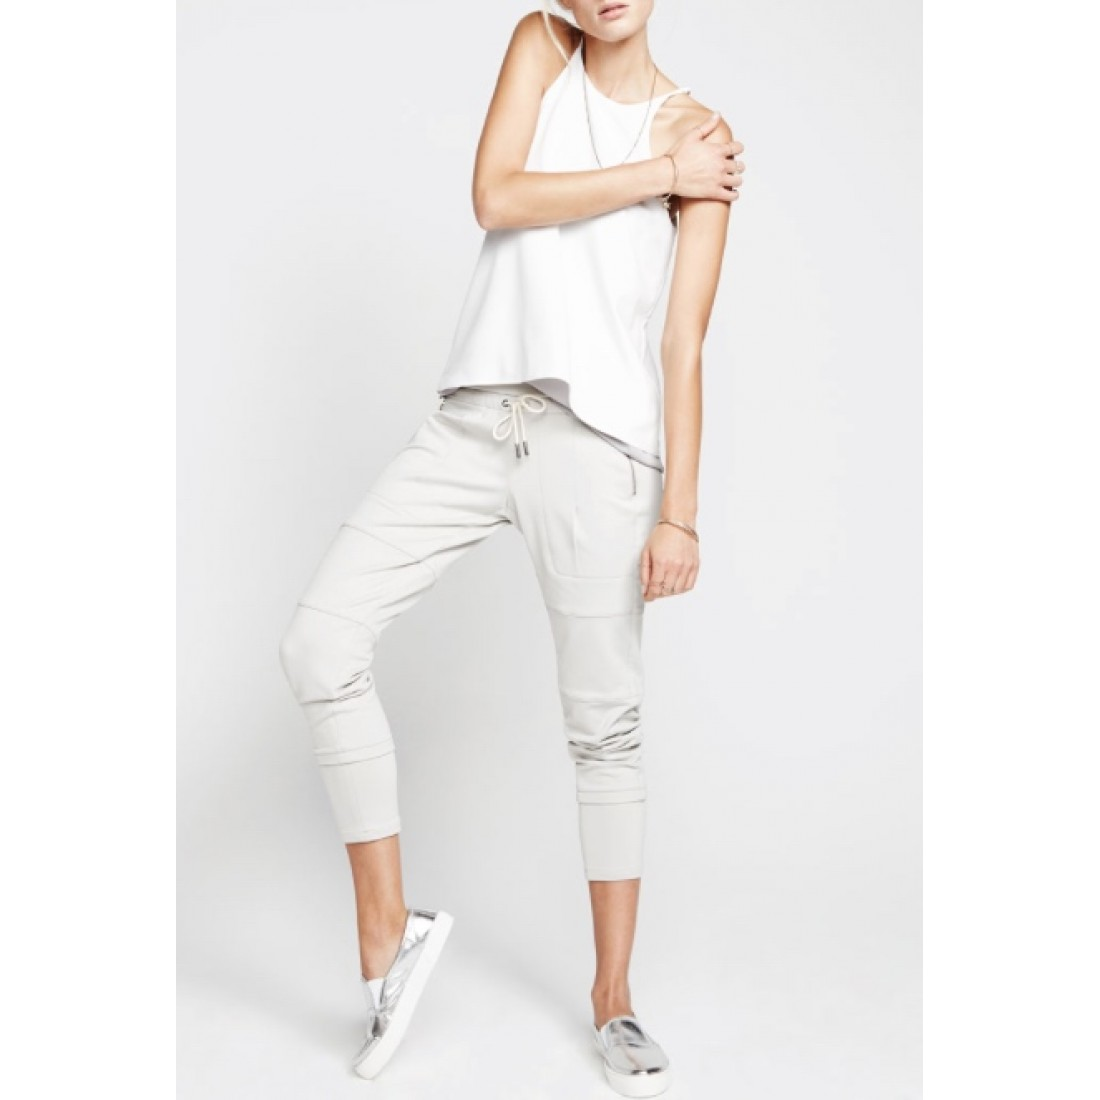 RAFFAELLO ROSSI PANTS candy pant-colors in stock! SPXJRRY